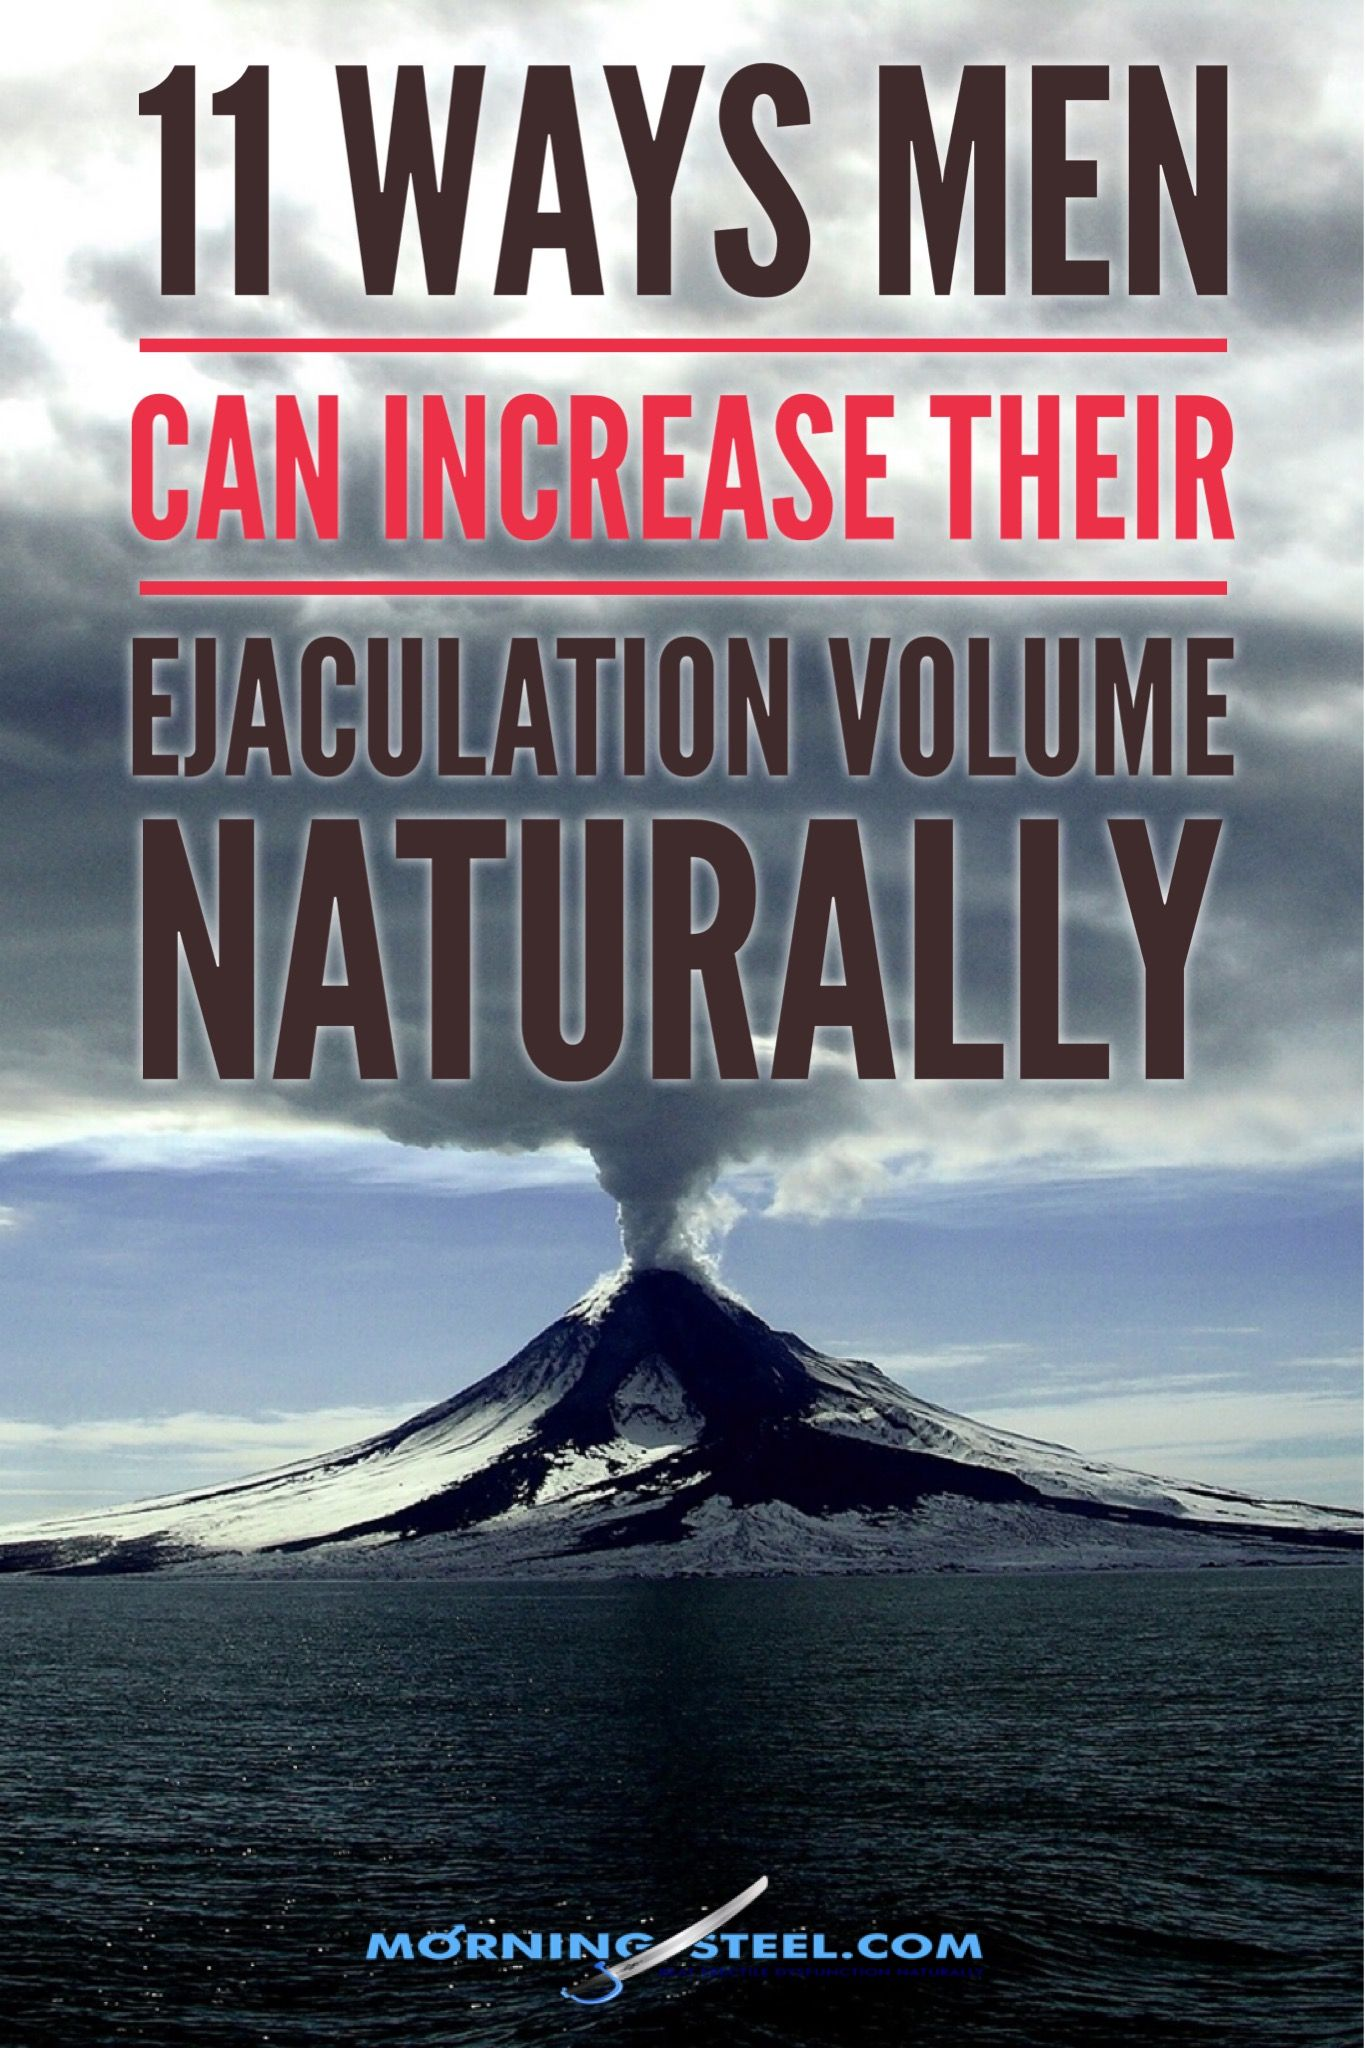 11 Ways Men Can Increase Their Ejaculation Volume Naturally.  11 Ways Men Can Increase Their Ejaculation Volume Naturally.  Although I've focused throughout this article on treatments known to directly improve ejaculation volume, you'll notice most of them also impact sexual health holistically.  That's because, as I said at the beginning, ejaculation volume is tied to other aspects of your sexual health.  Bottom line: healthy gonads = lots of ejaculate. Unhealthy, unhappy gonads = weak ejaculation.